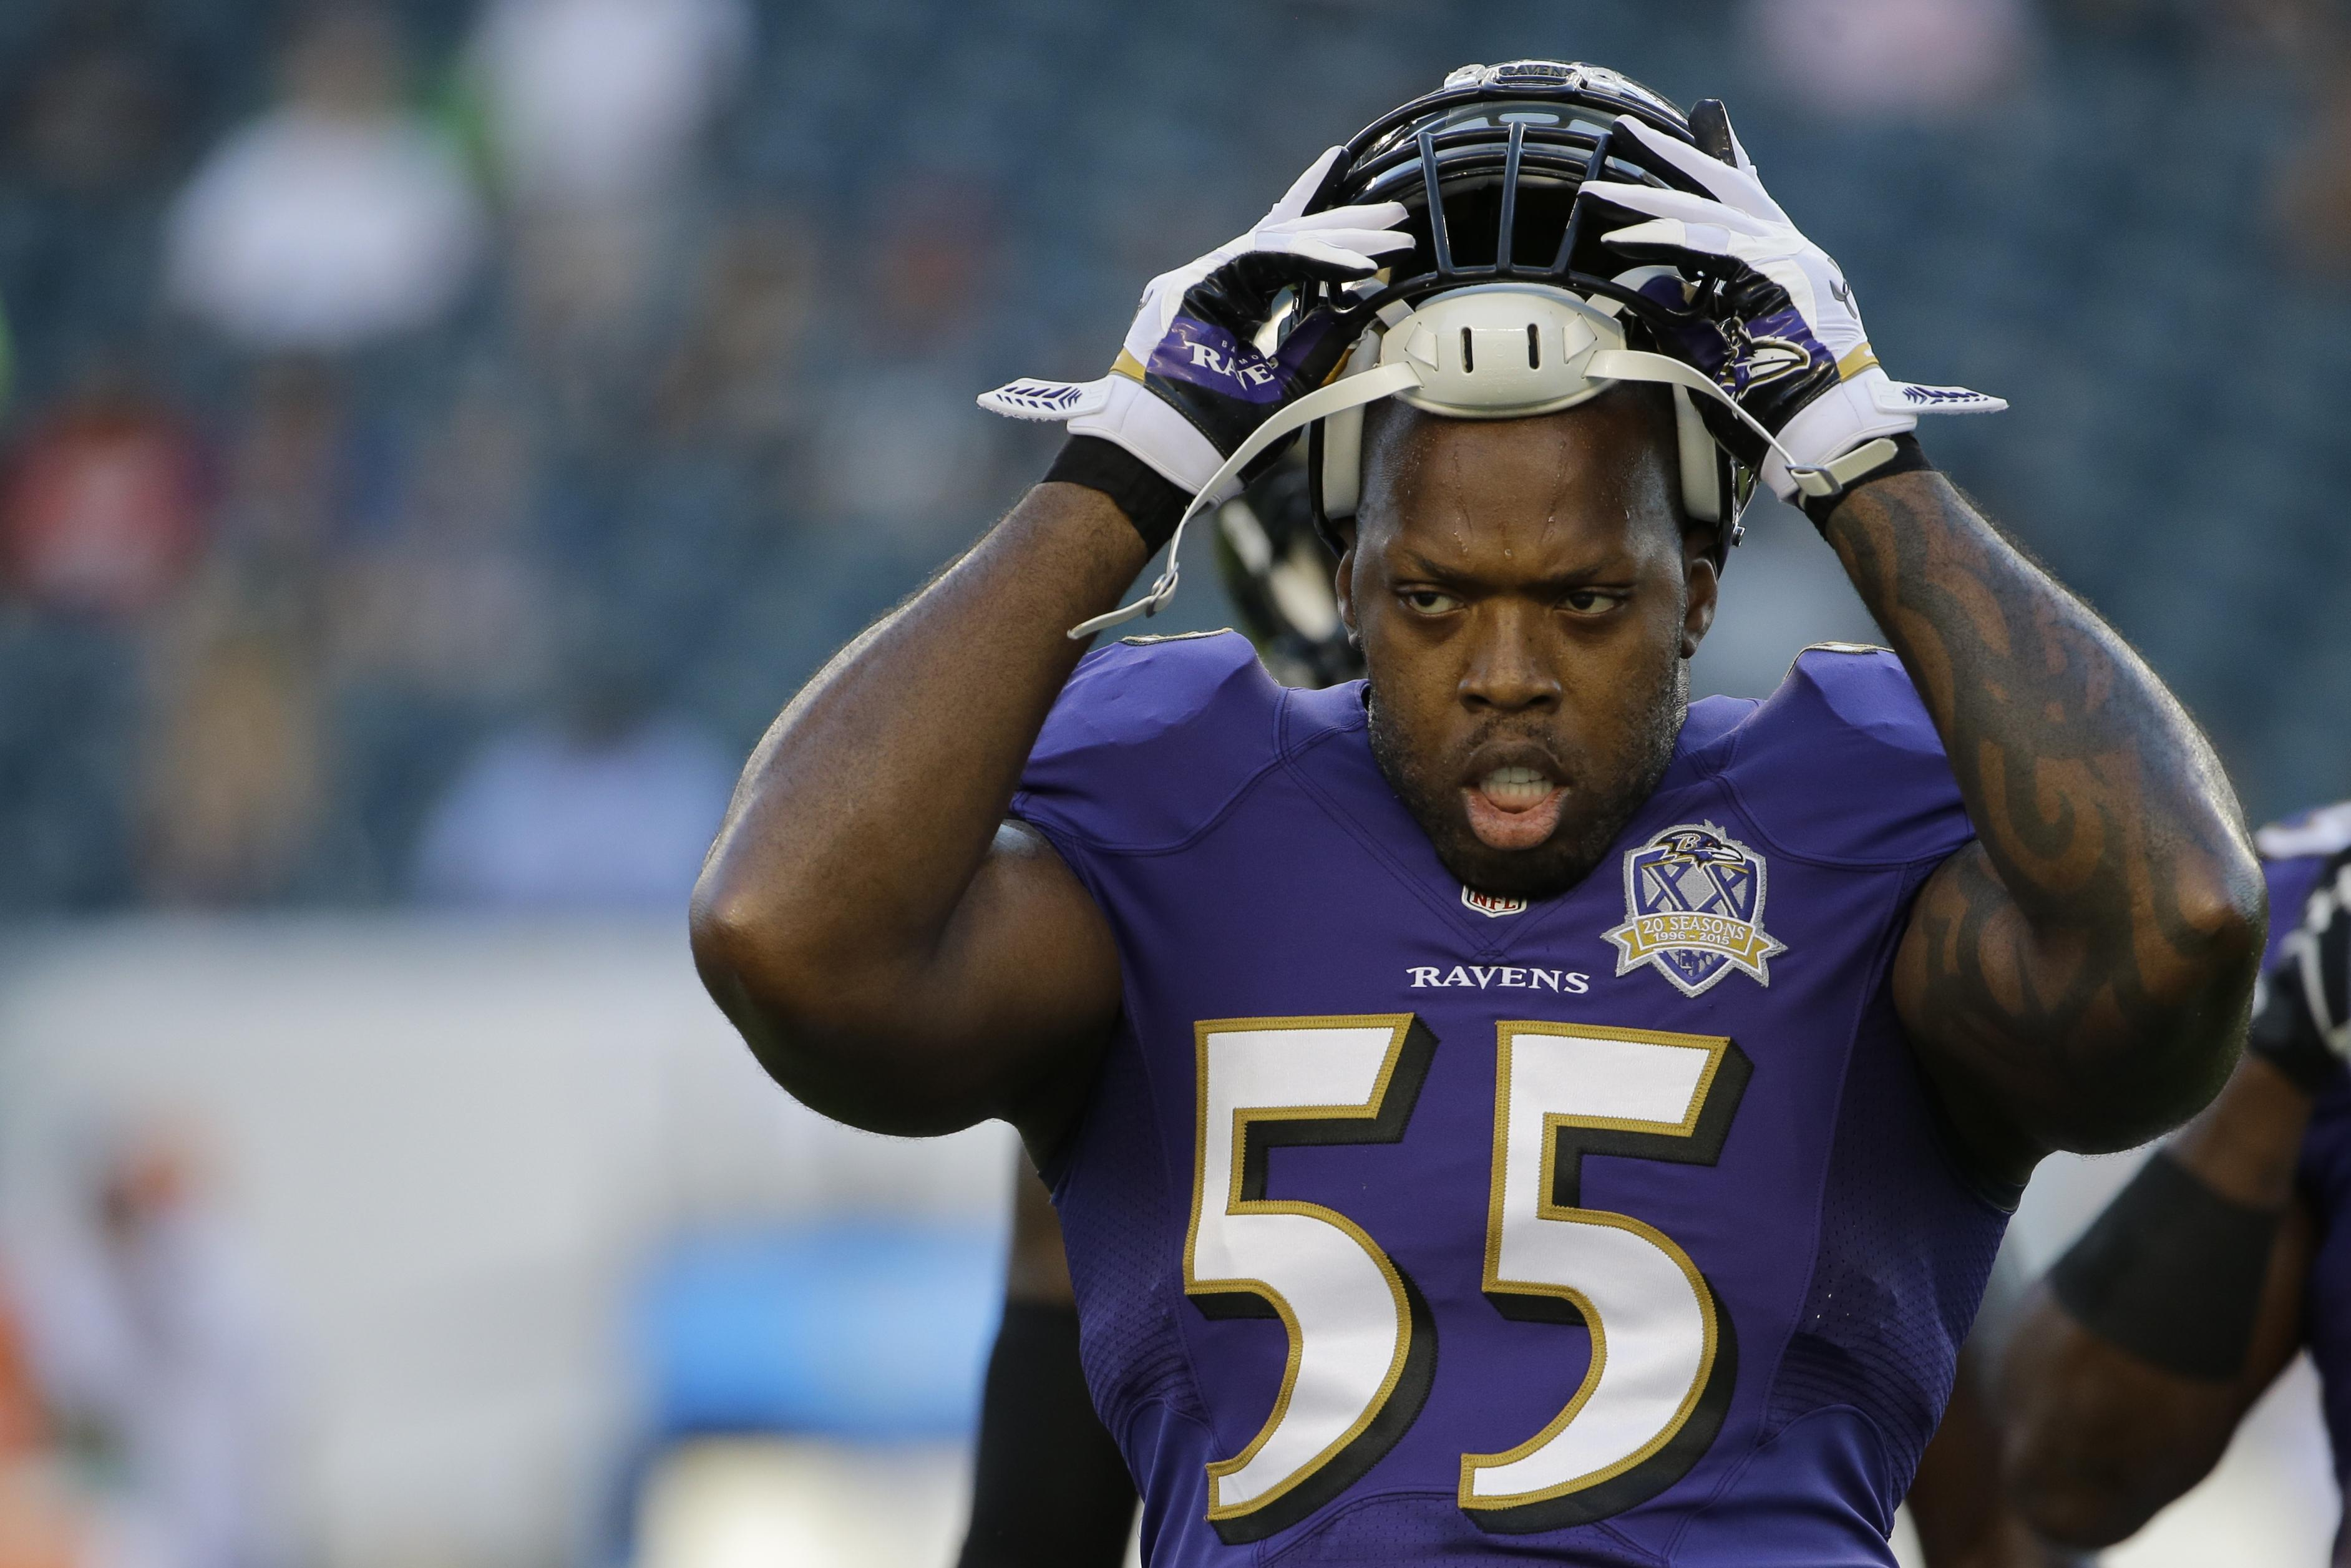 Terrell Suggs | Pro32: Head to Head